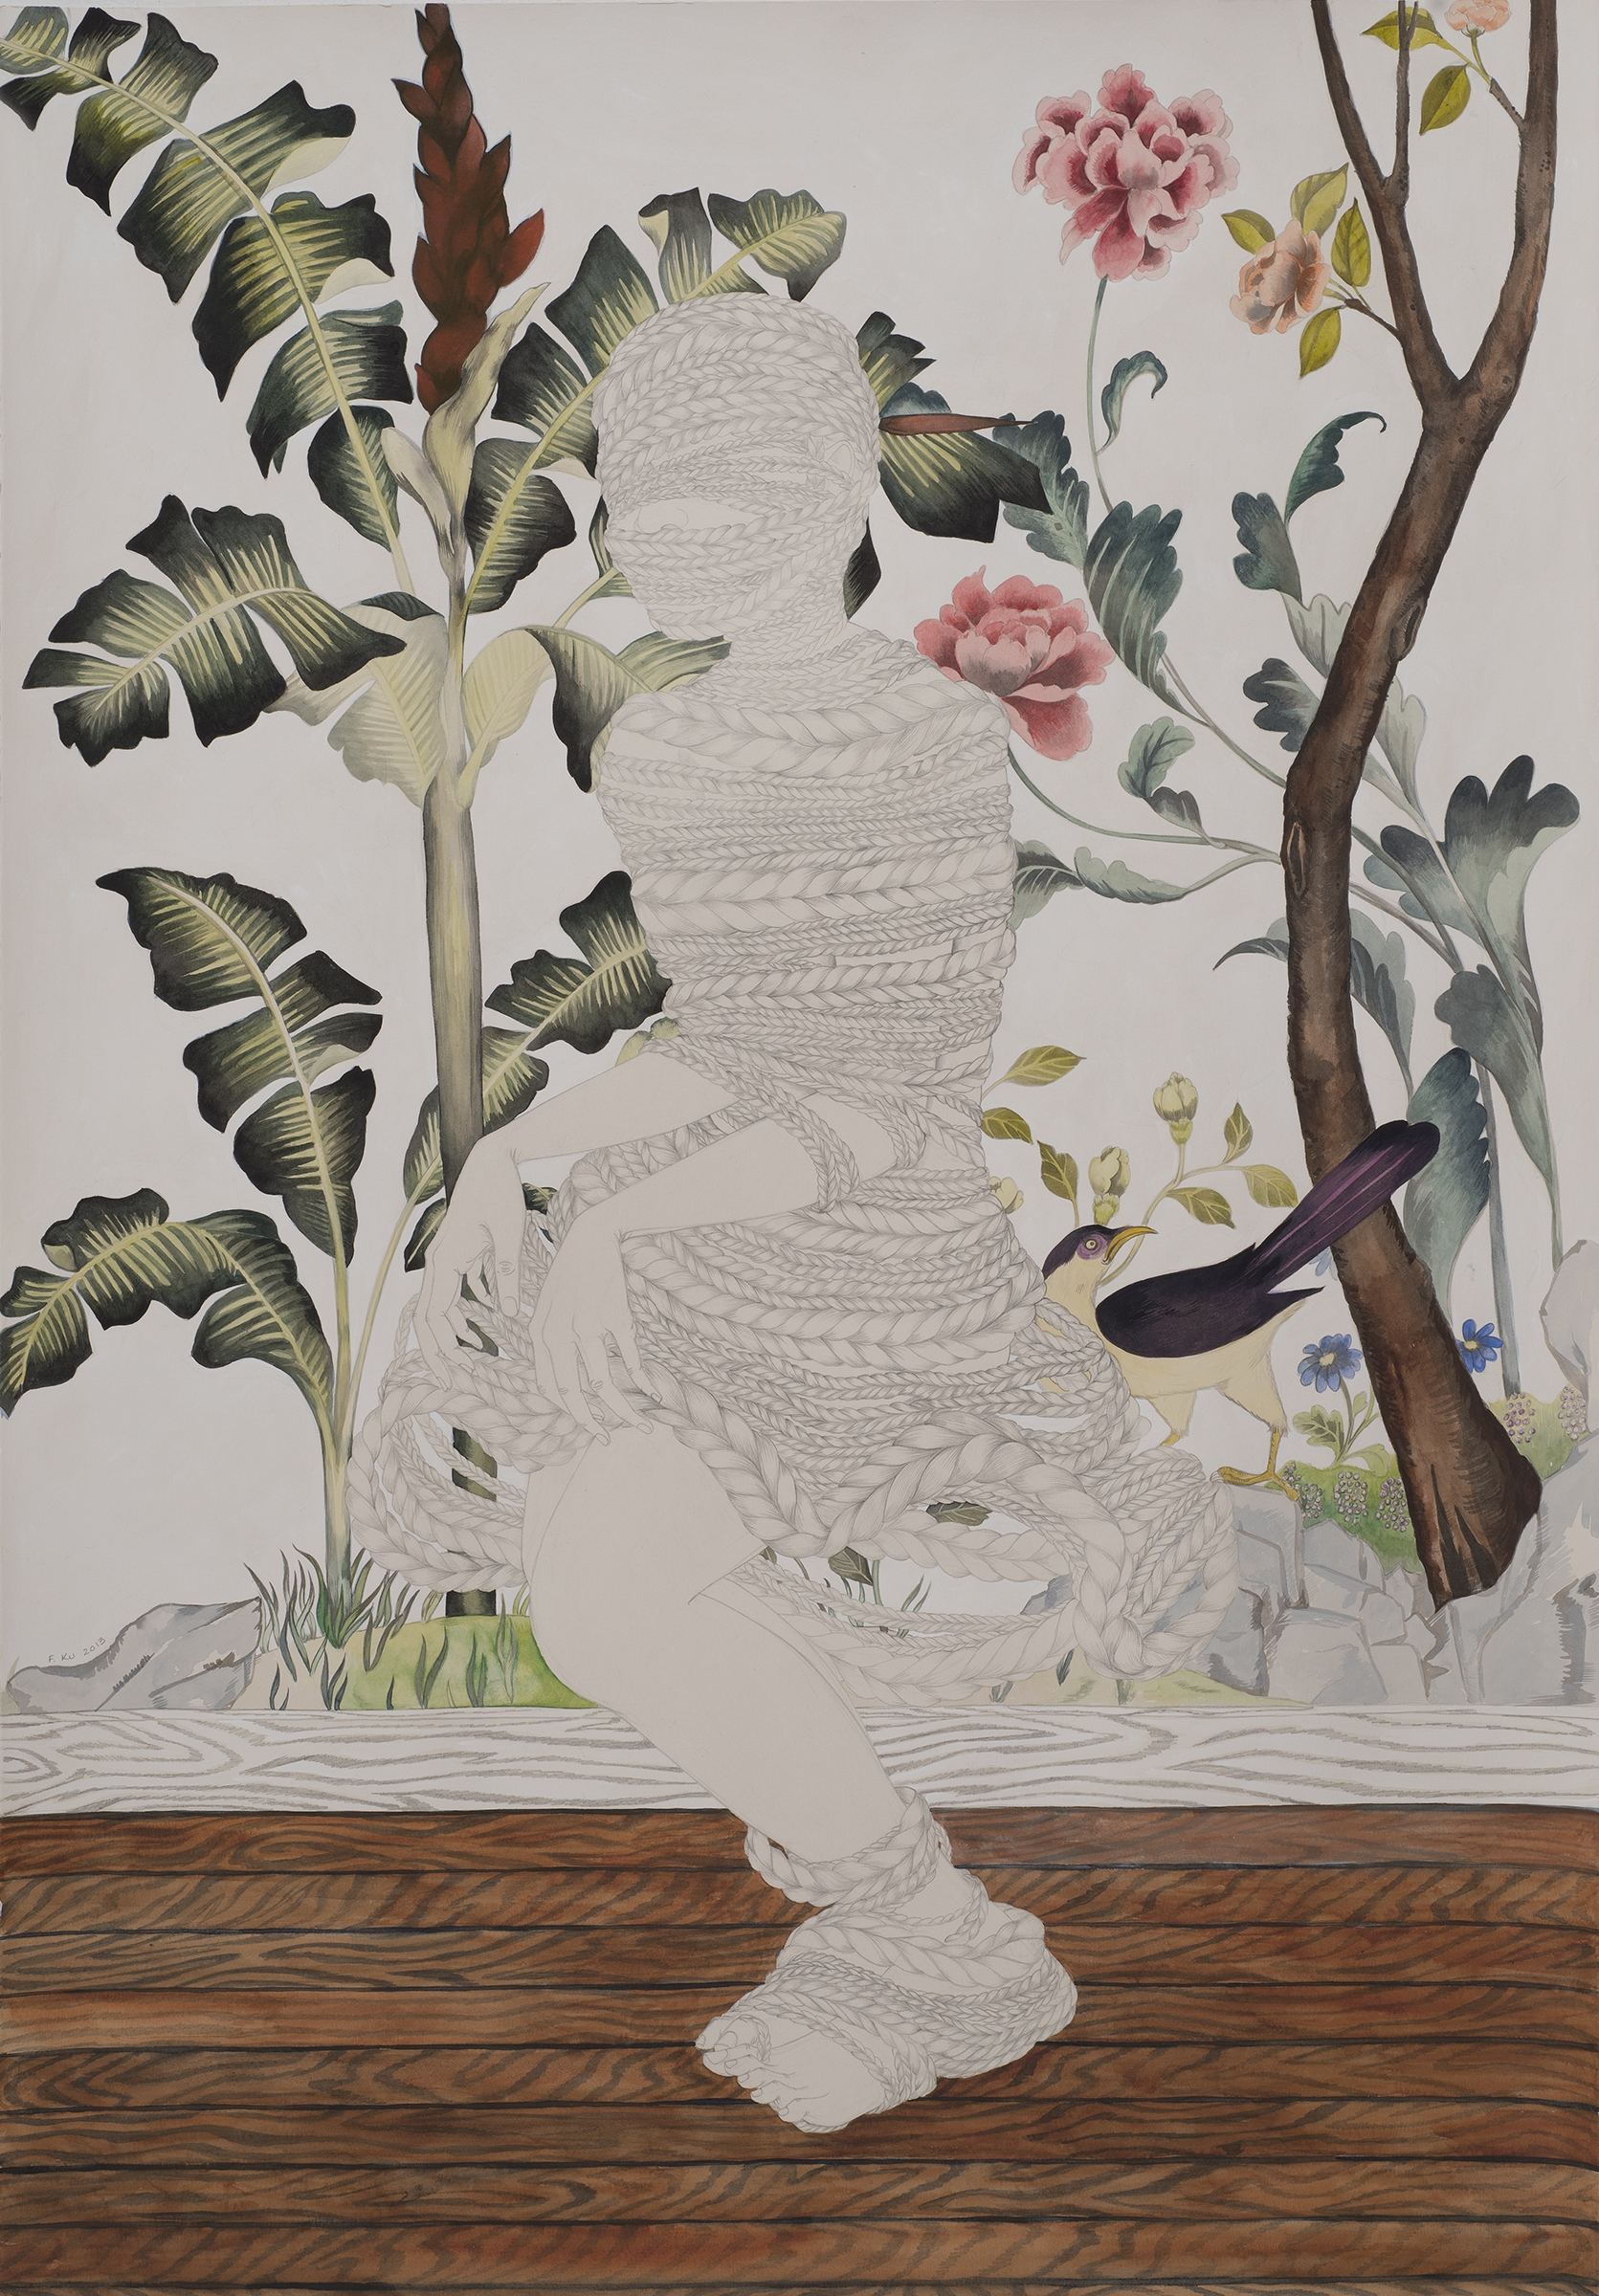 Domesticate , 2013 Graphite, watercolor, ink on ivory Fabriana Rosaspina 39 x 27 1/2 inches Private collection  Photo: Bill Orcutt